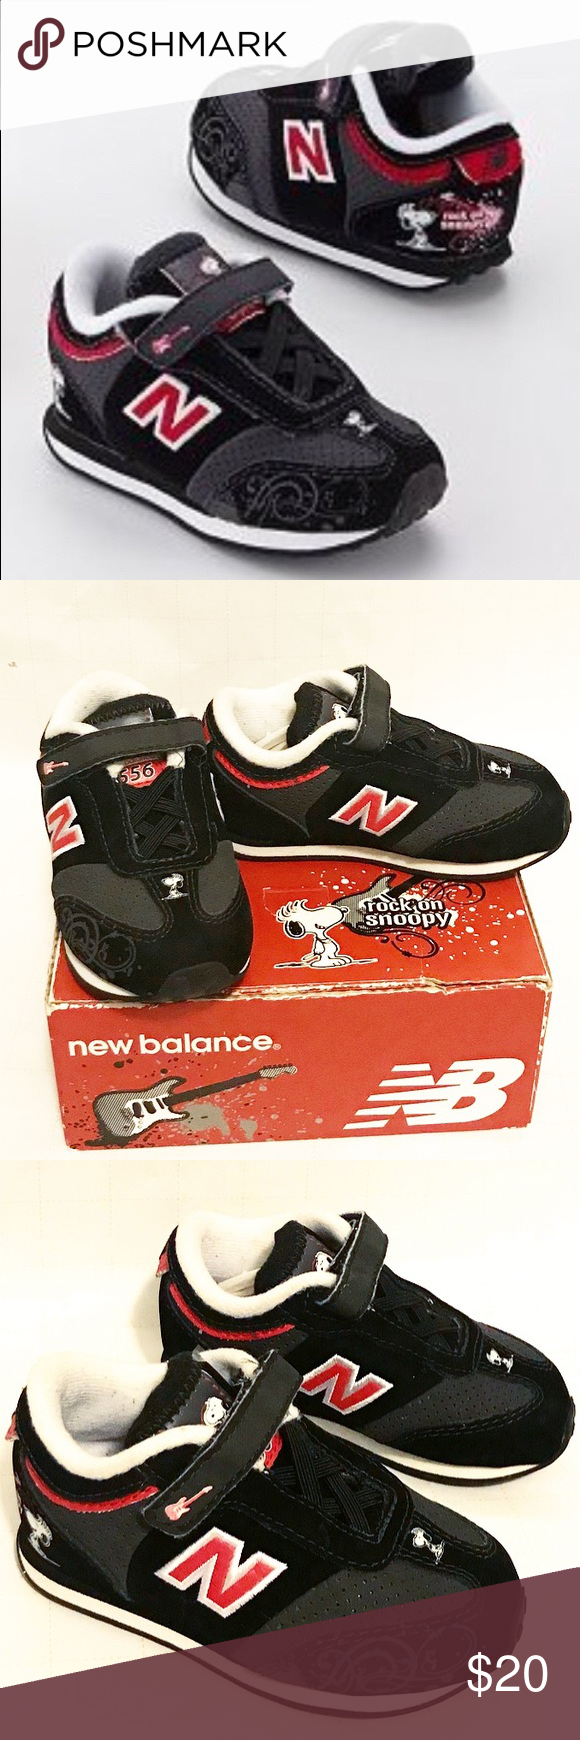 b0949eb24a New Balance Peanuts Snoopy Sneakers New Balance Rock On Snoopy Sneakers. Has  a Velcro strap